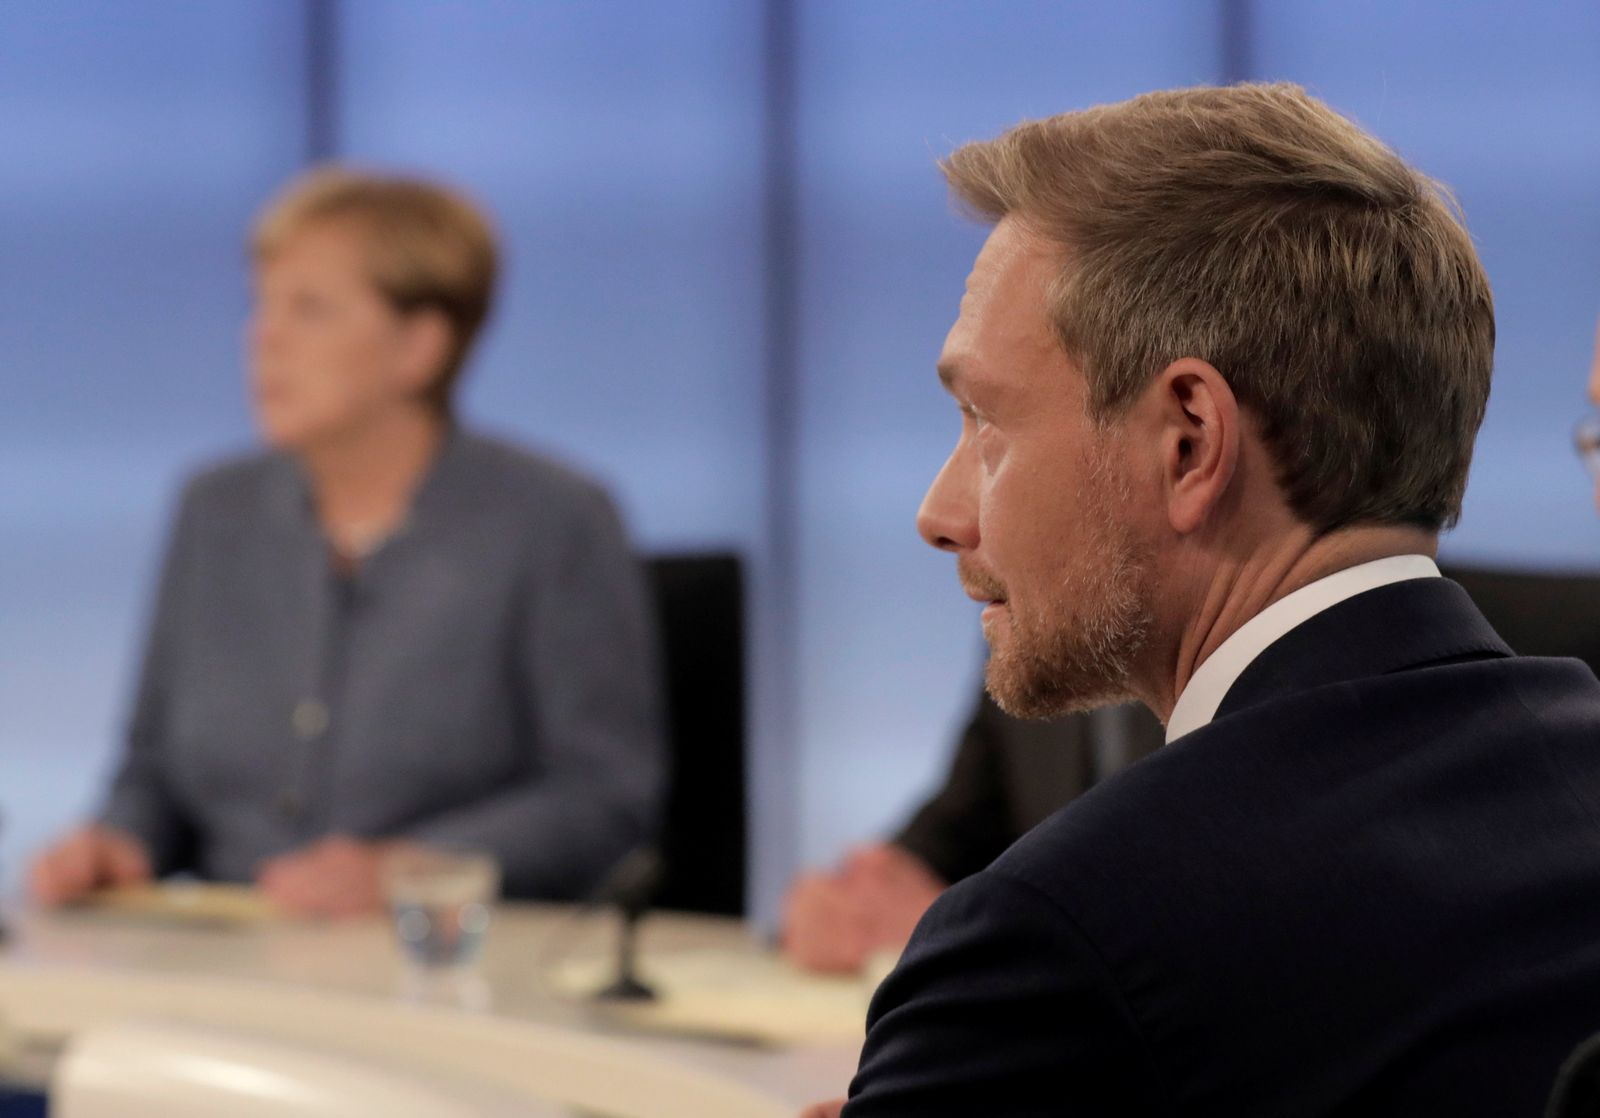 GERMANY-ELECTION/REACTIONS TALKSHOW